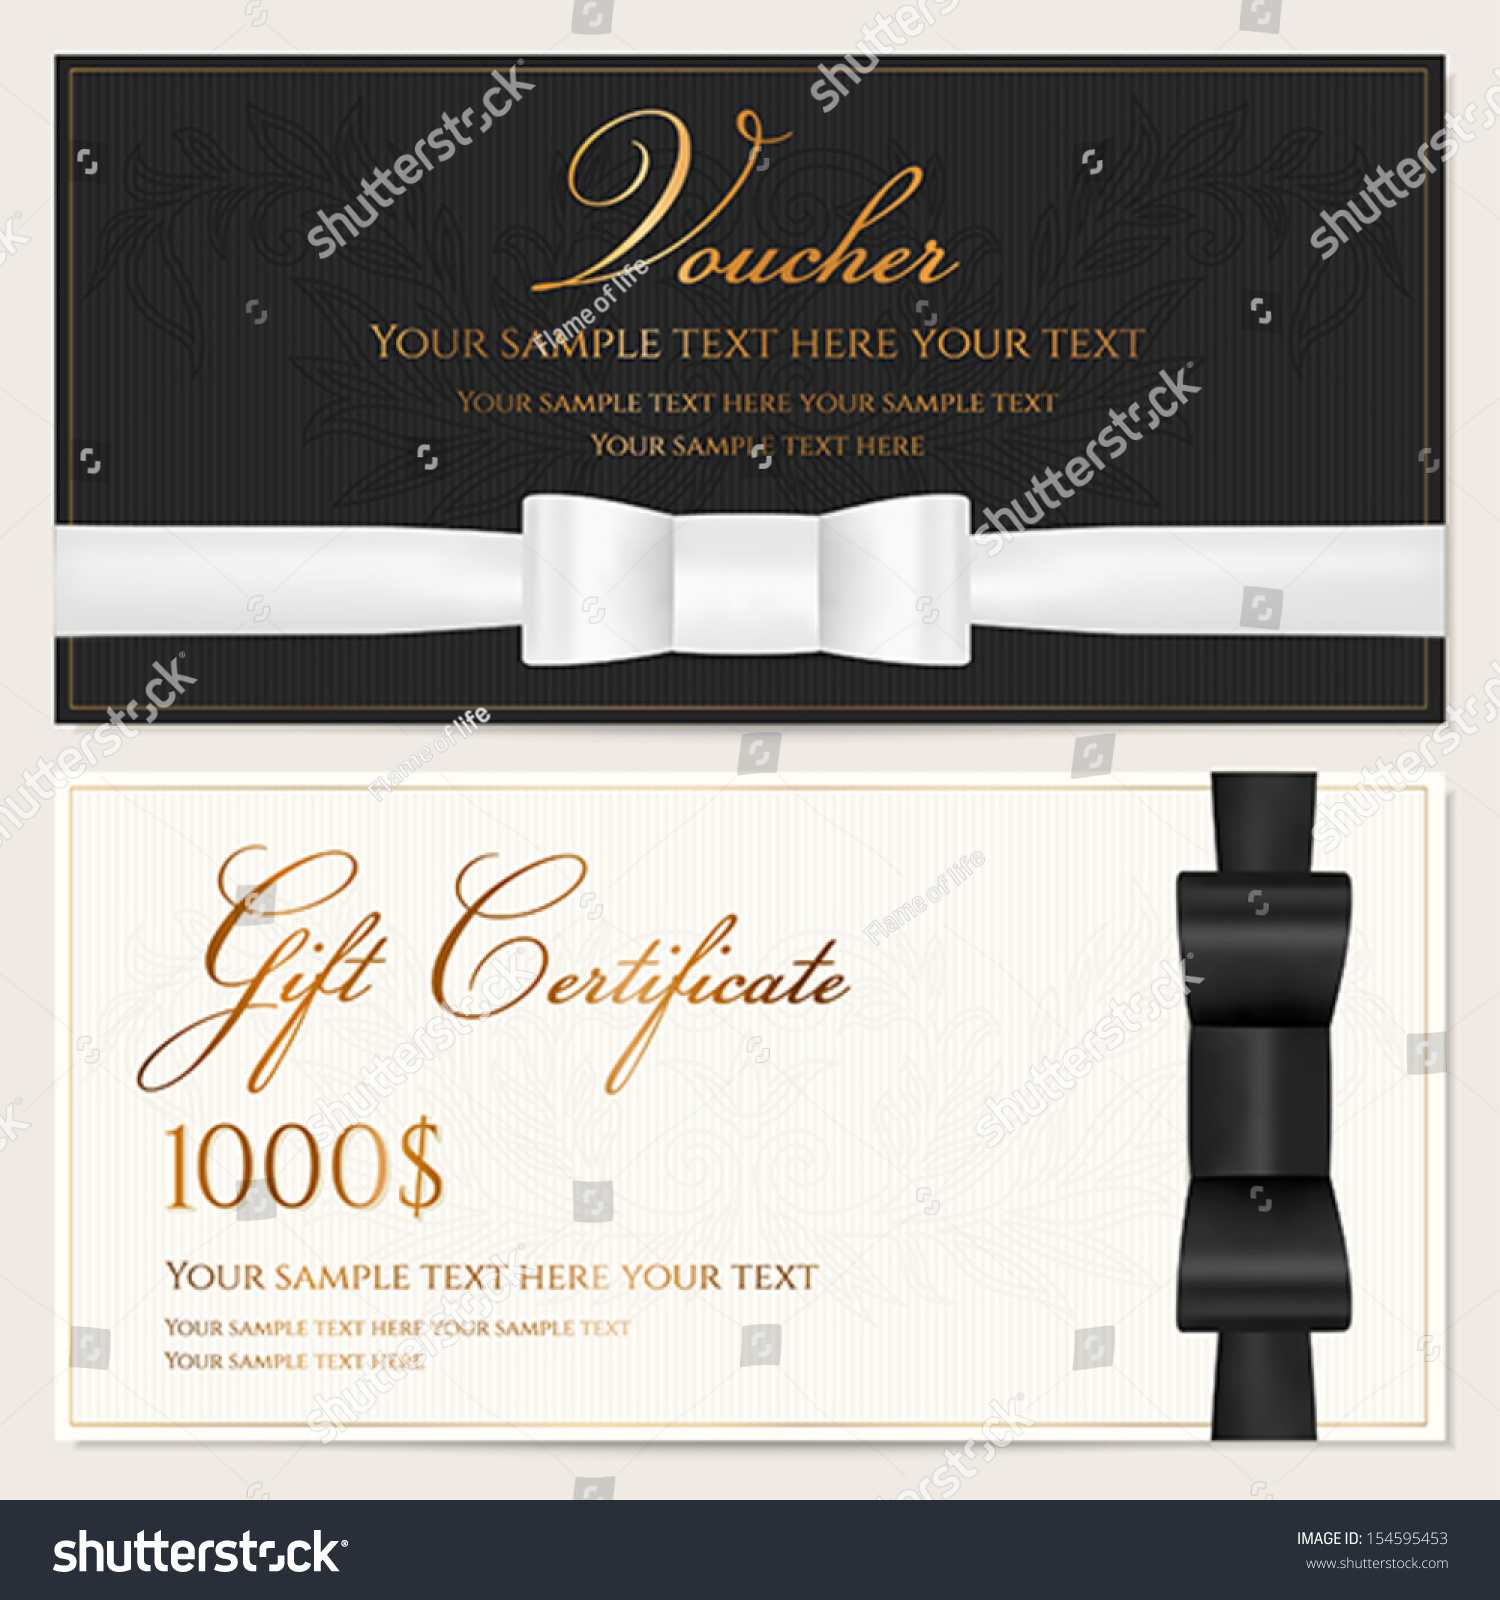 Voucher gift certificate coupon invitation gift lager for Cheque voucher template